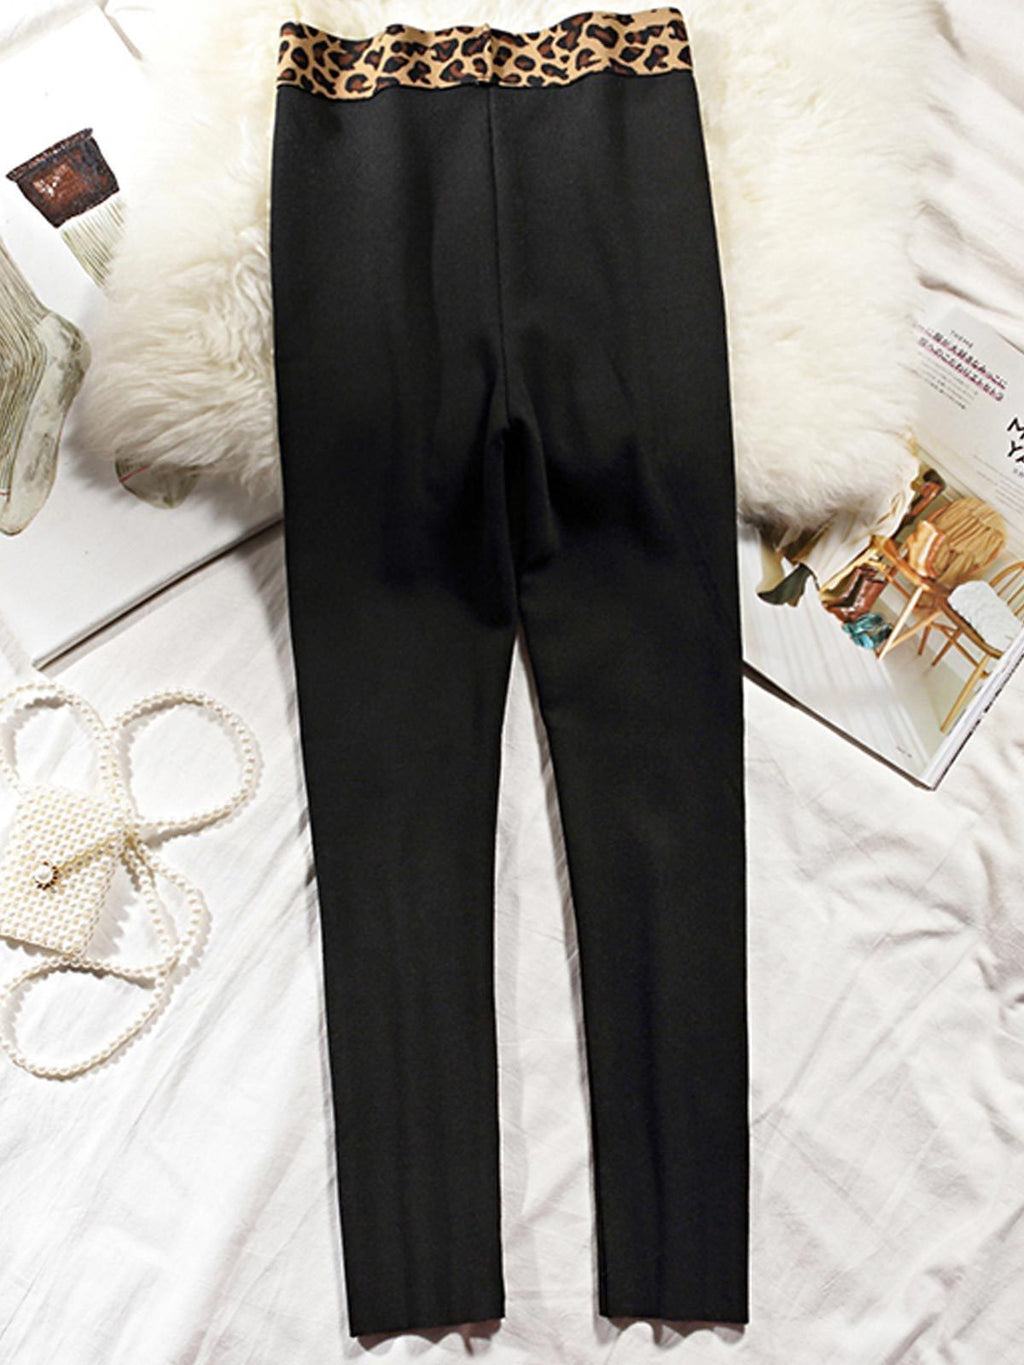 Daily Casual Cotton Pants